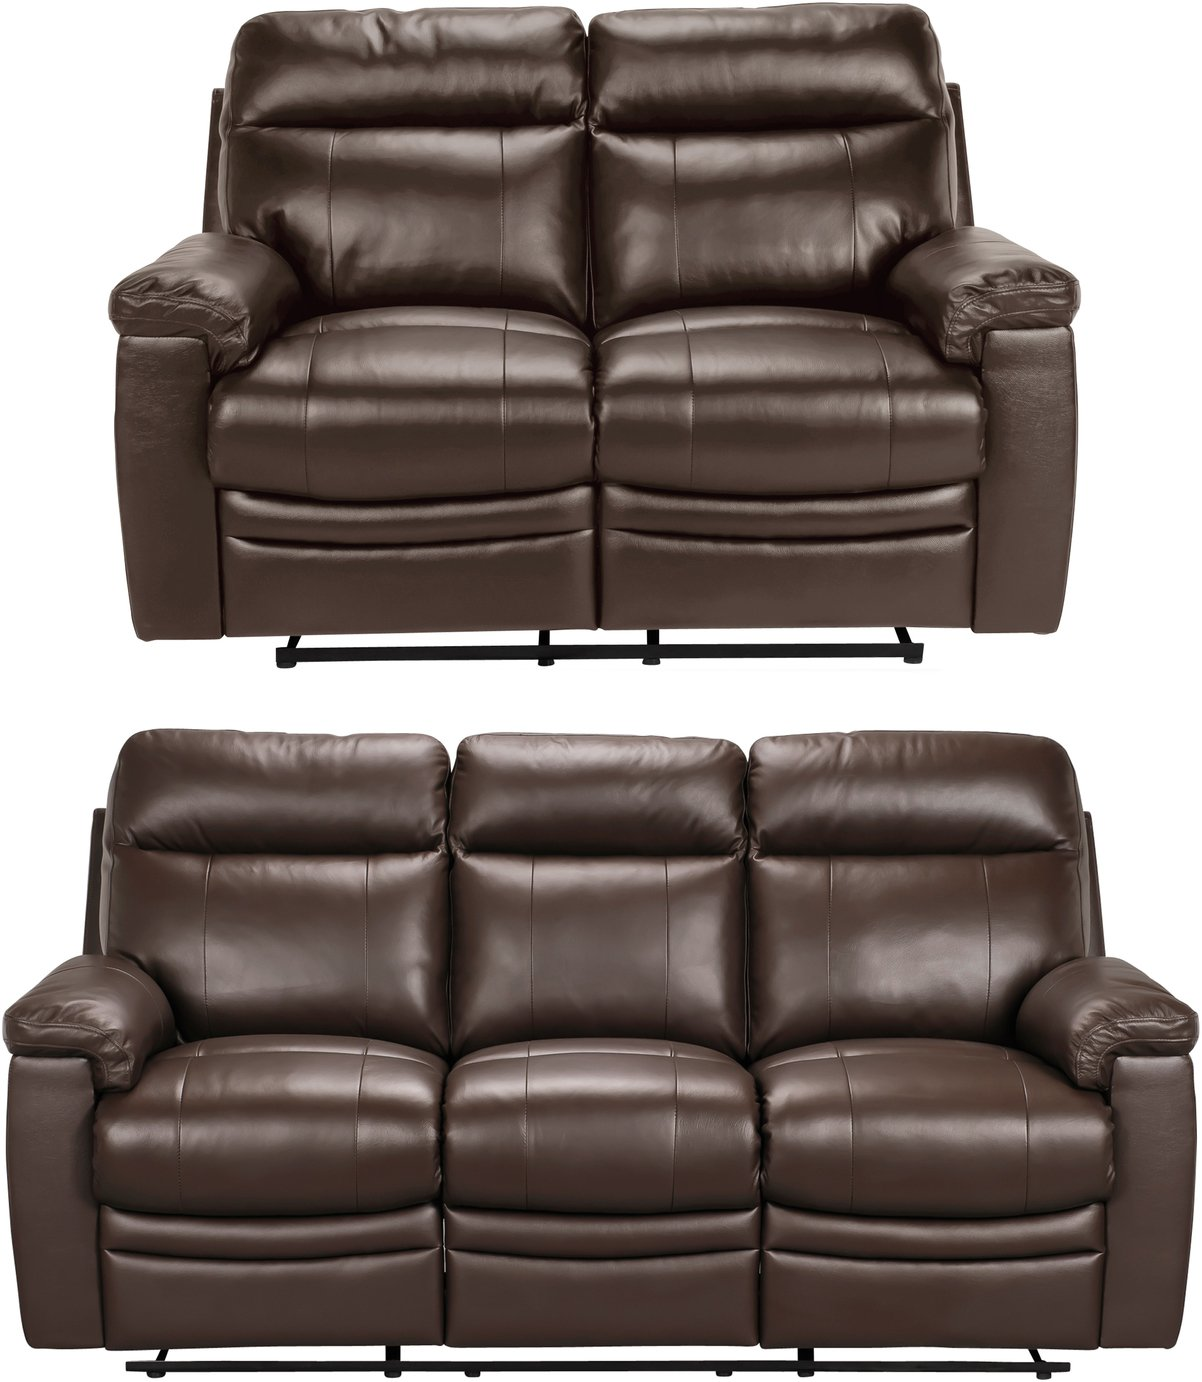 Argos Home - New Paolo Large and Reg Manual Recliner - Sofa-Choc